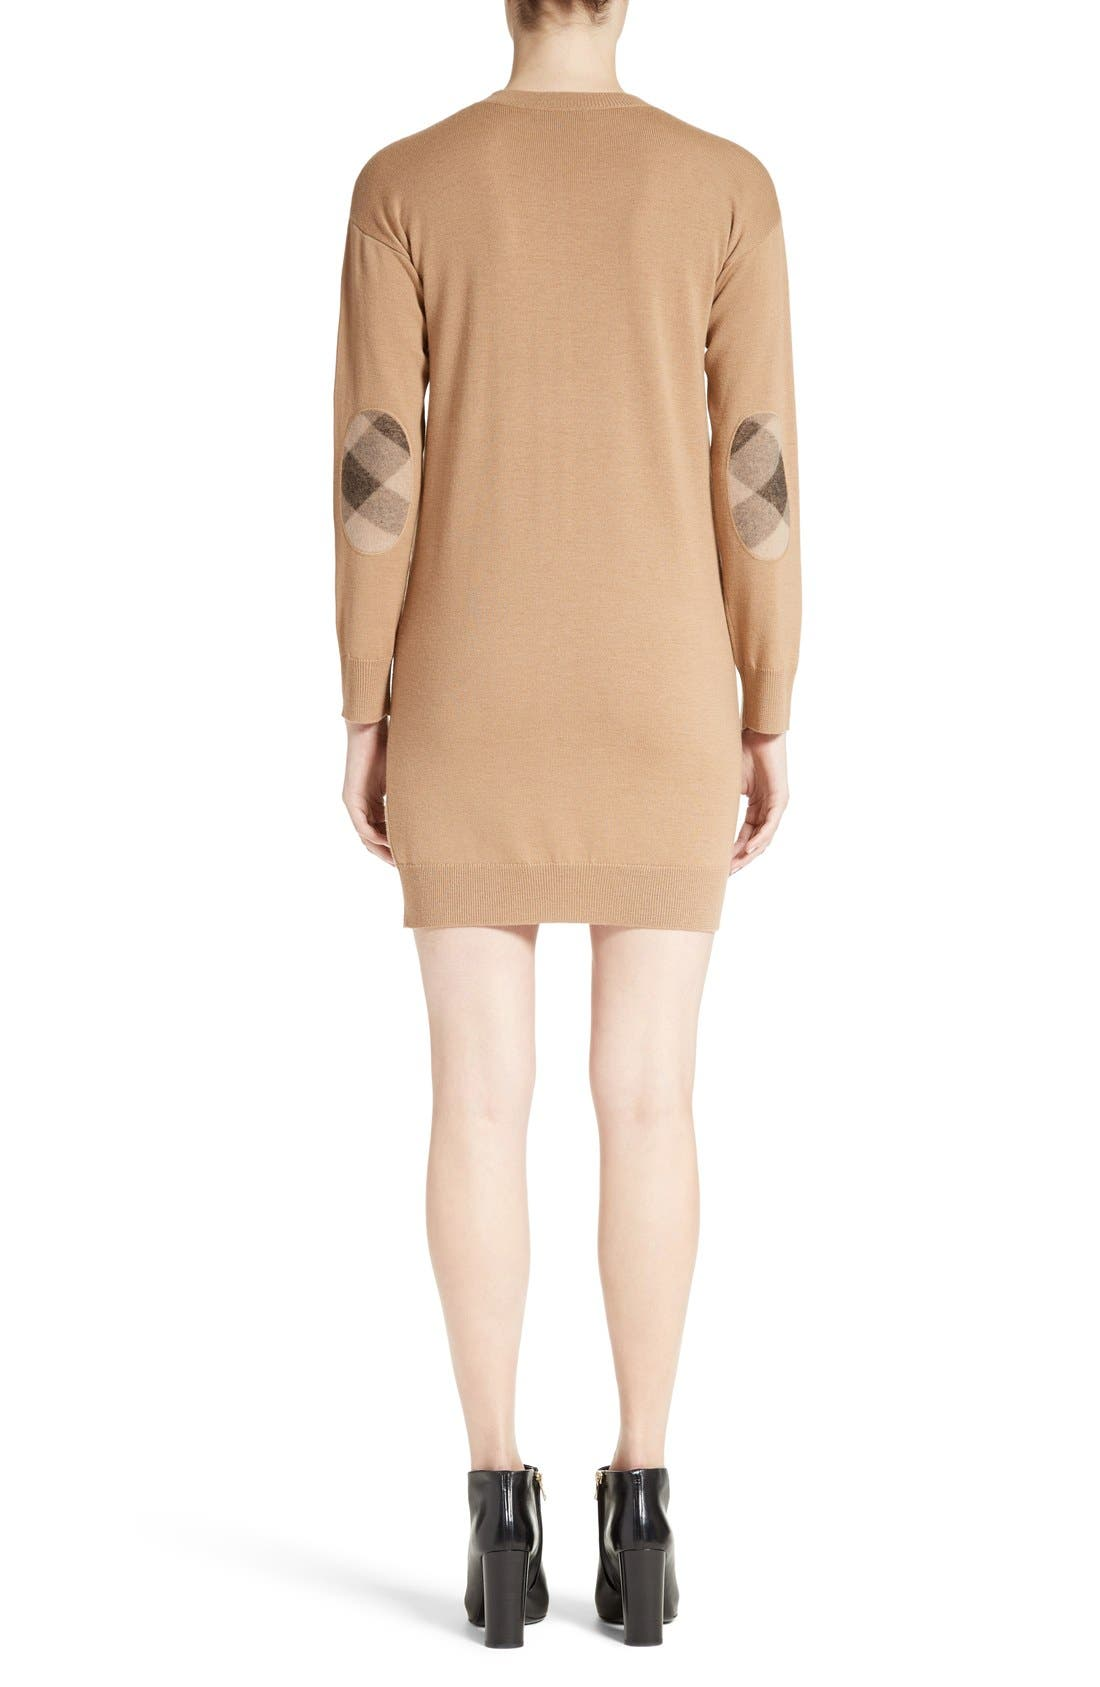 Alewater Elbow Patch Merino Wool Dress,                             Alternate thumbnail 2, color,                             Camel